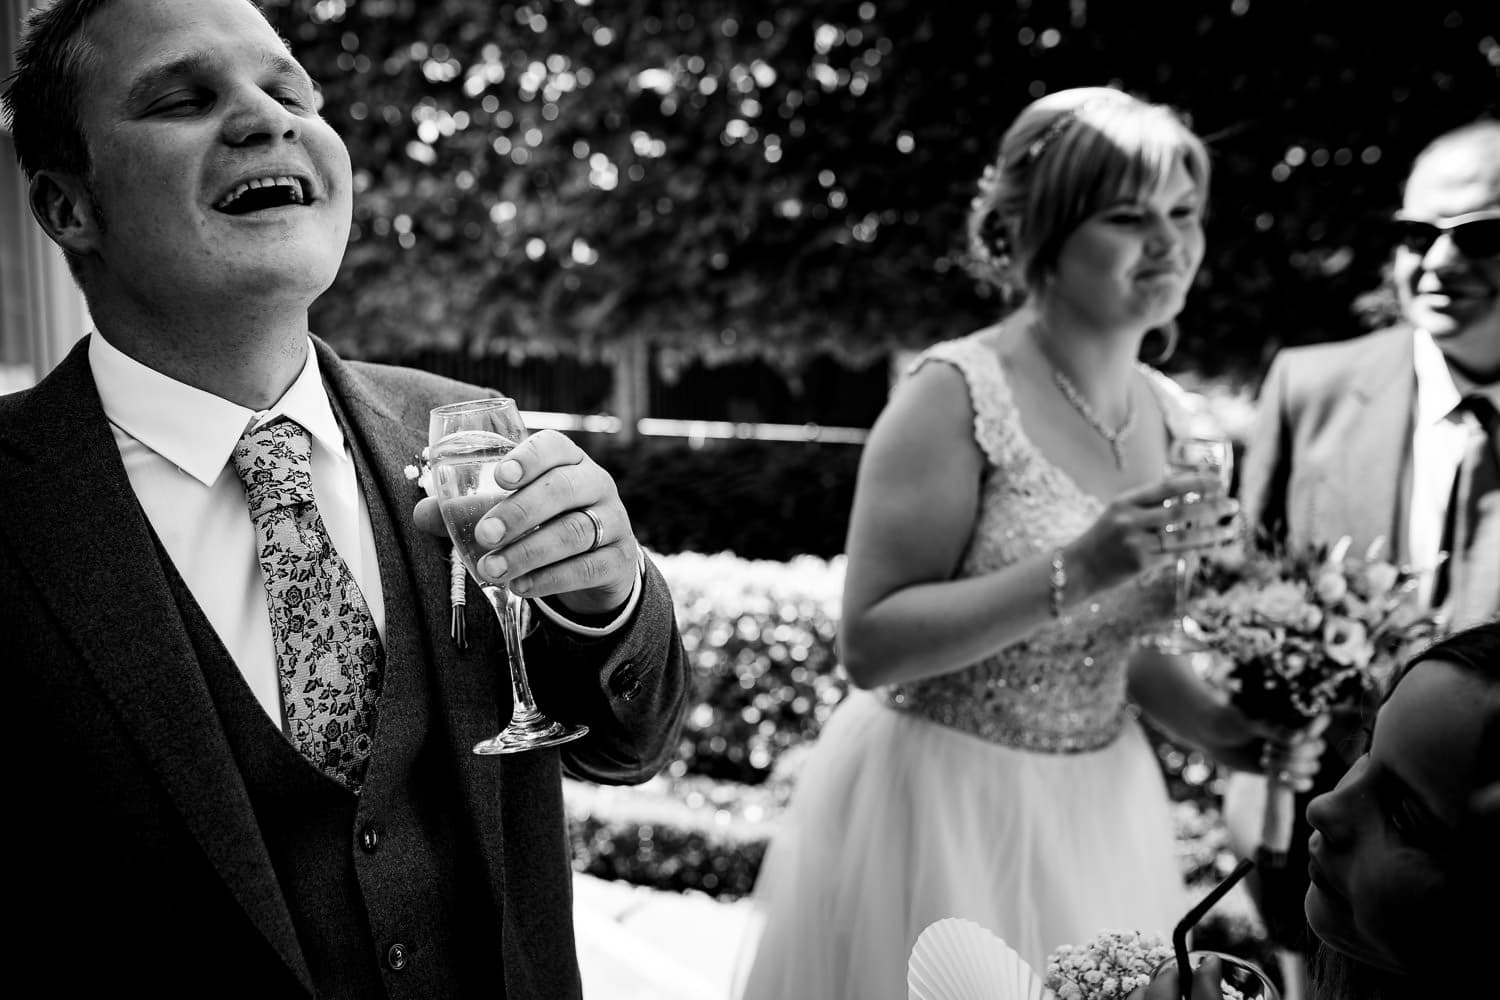 Warwick House Wedding Photography captures grooms cracking a joke